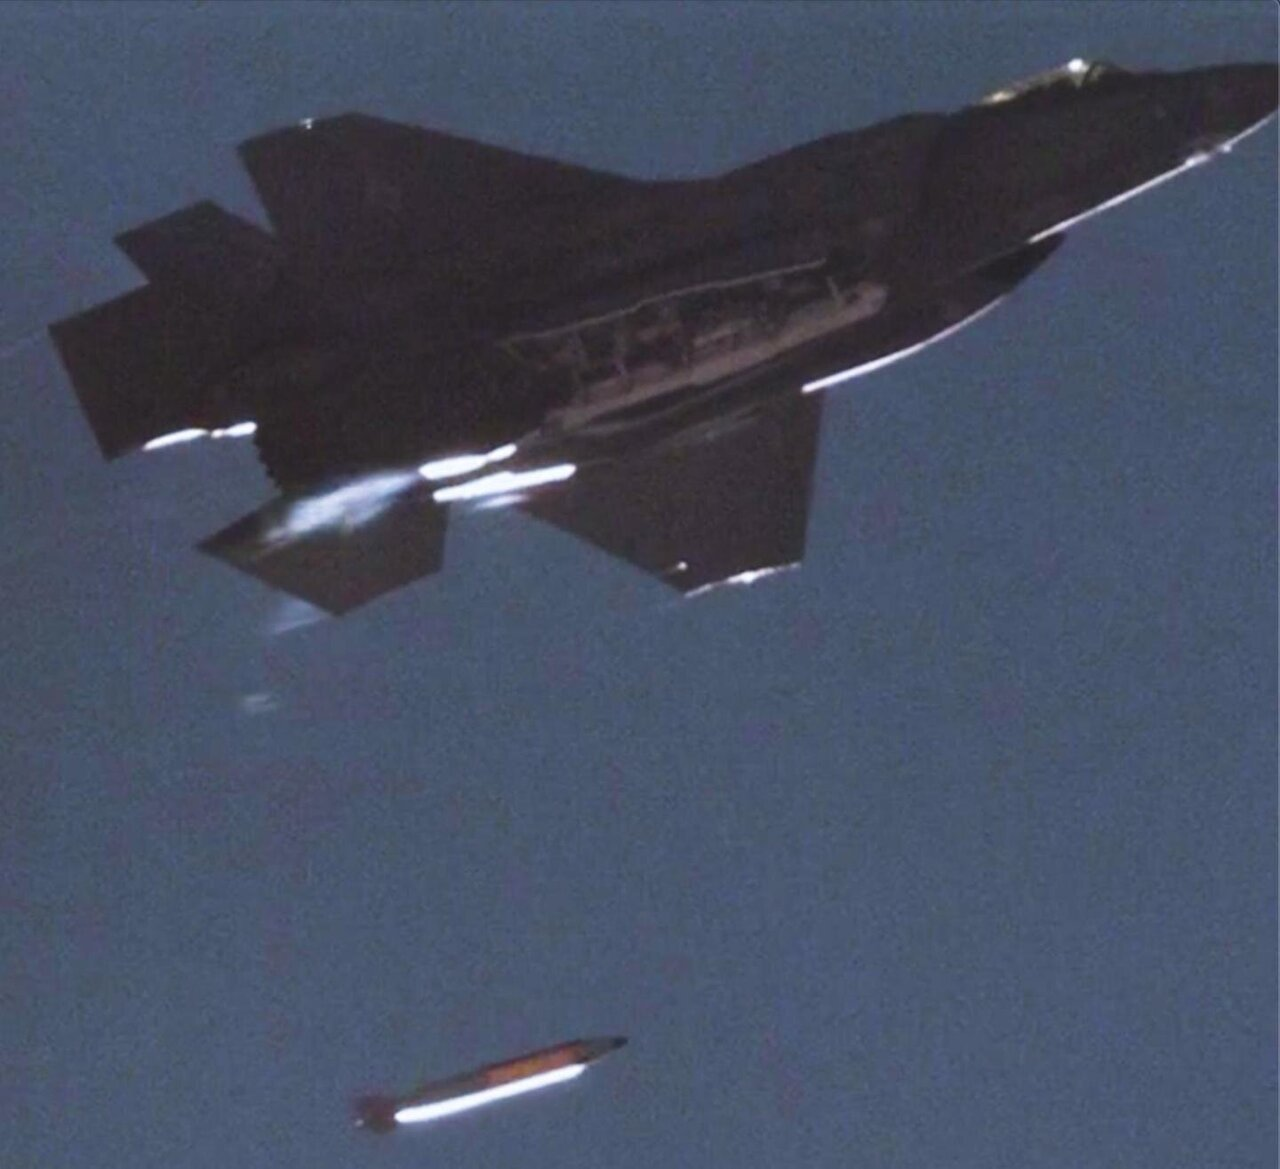 Flight tests to show B61-12 will work on Air Force's newest fighter jet